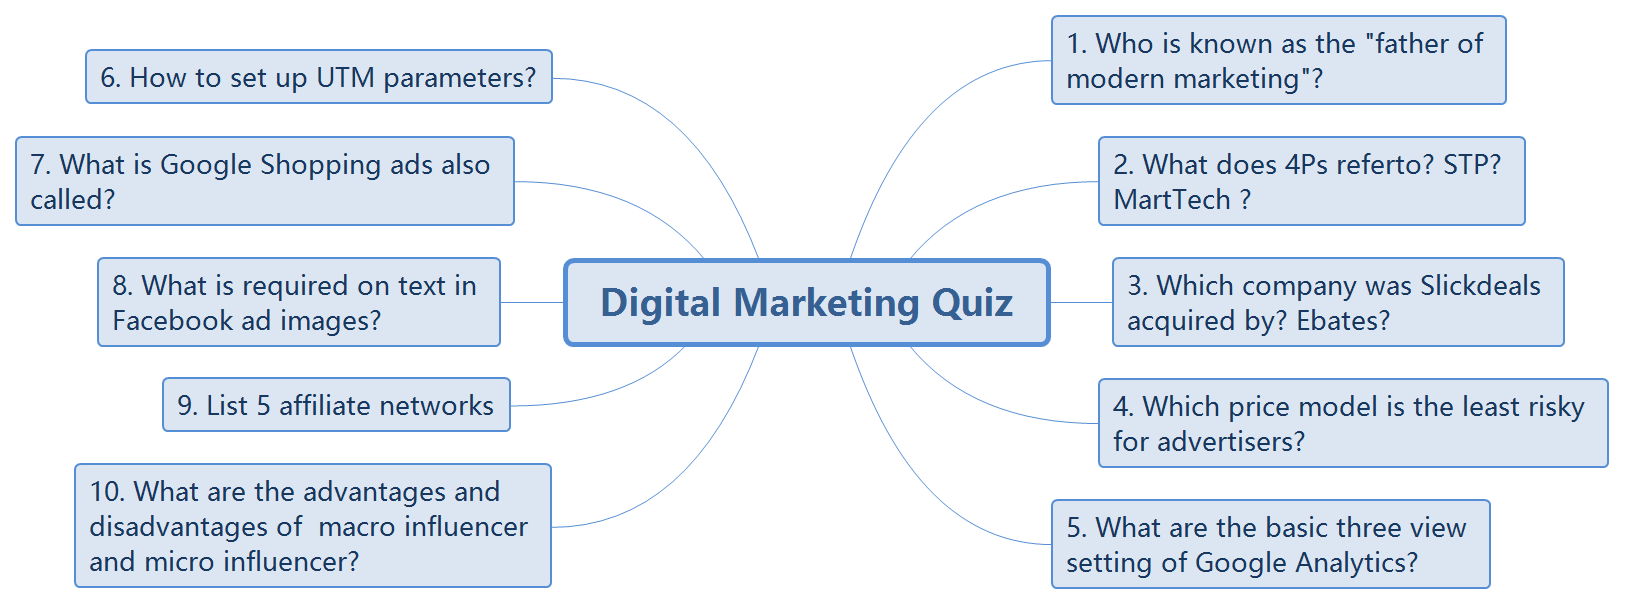 Digital Marketing Quiz